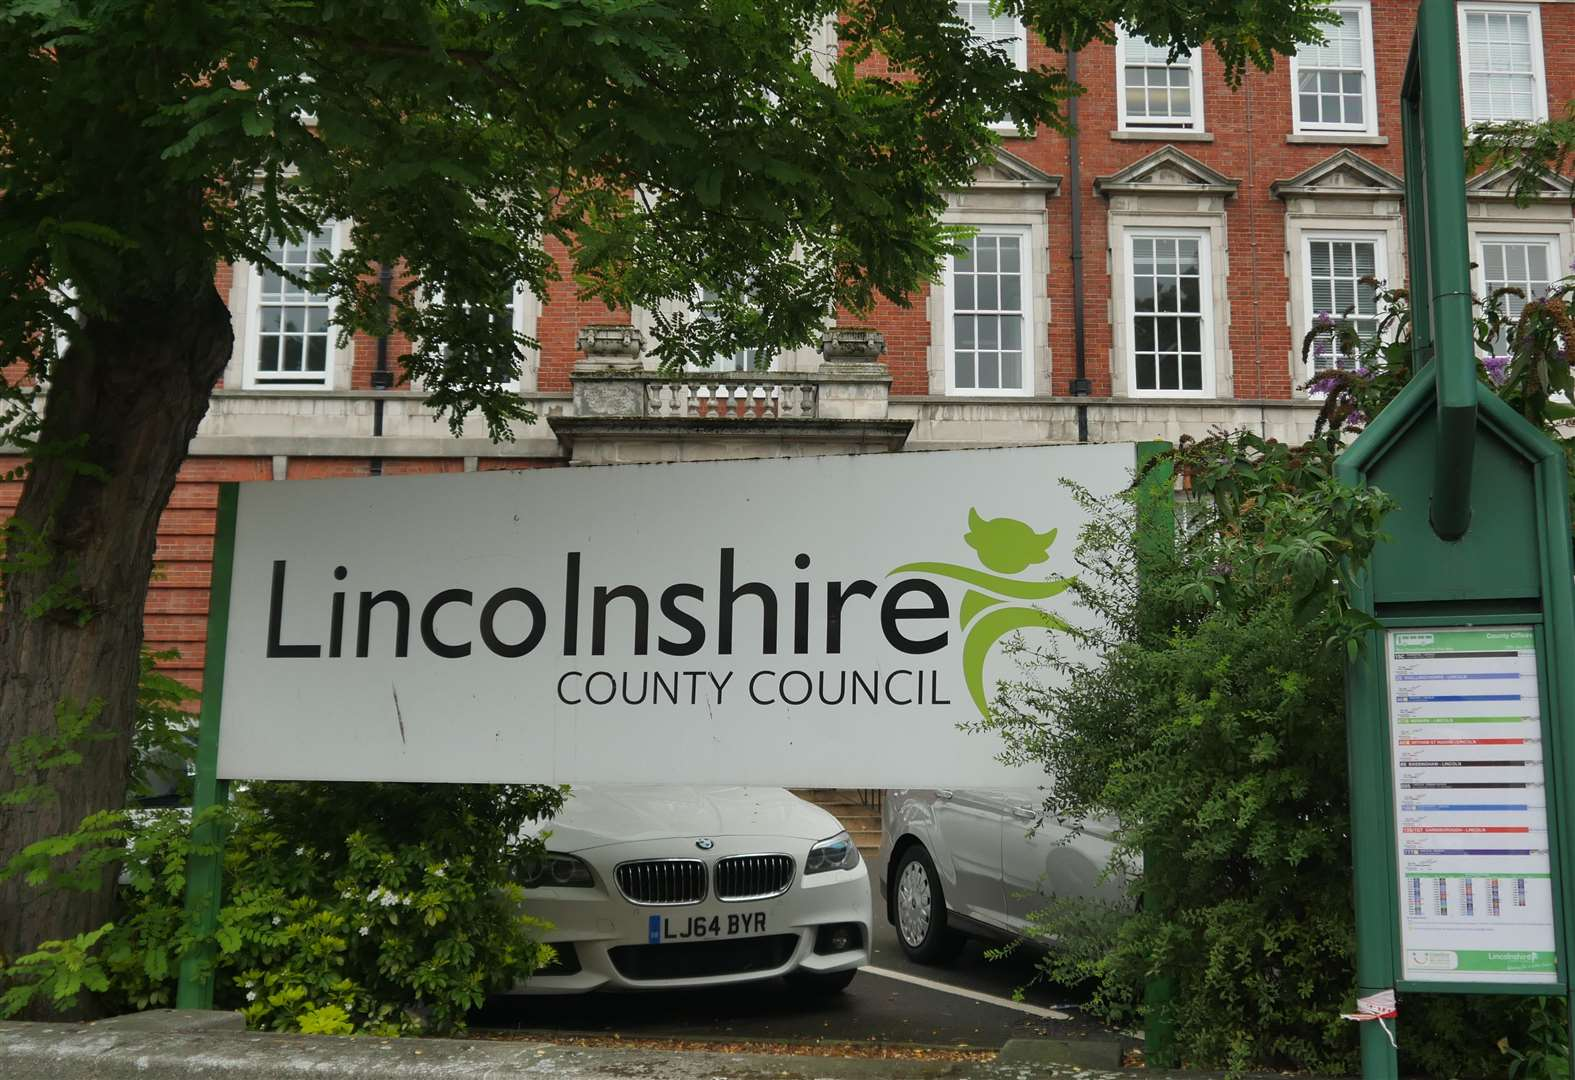 Lincolnshire County Council's children services rated as good by Care Quality Commission